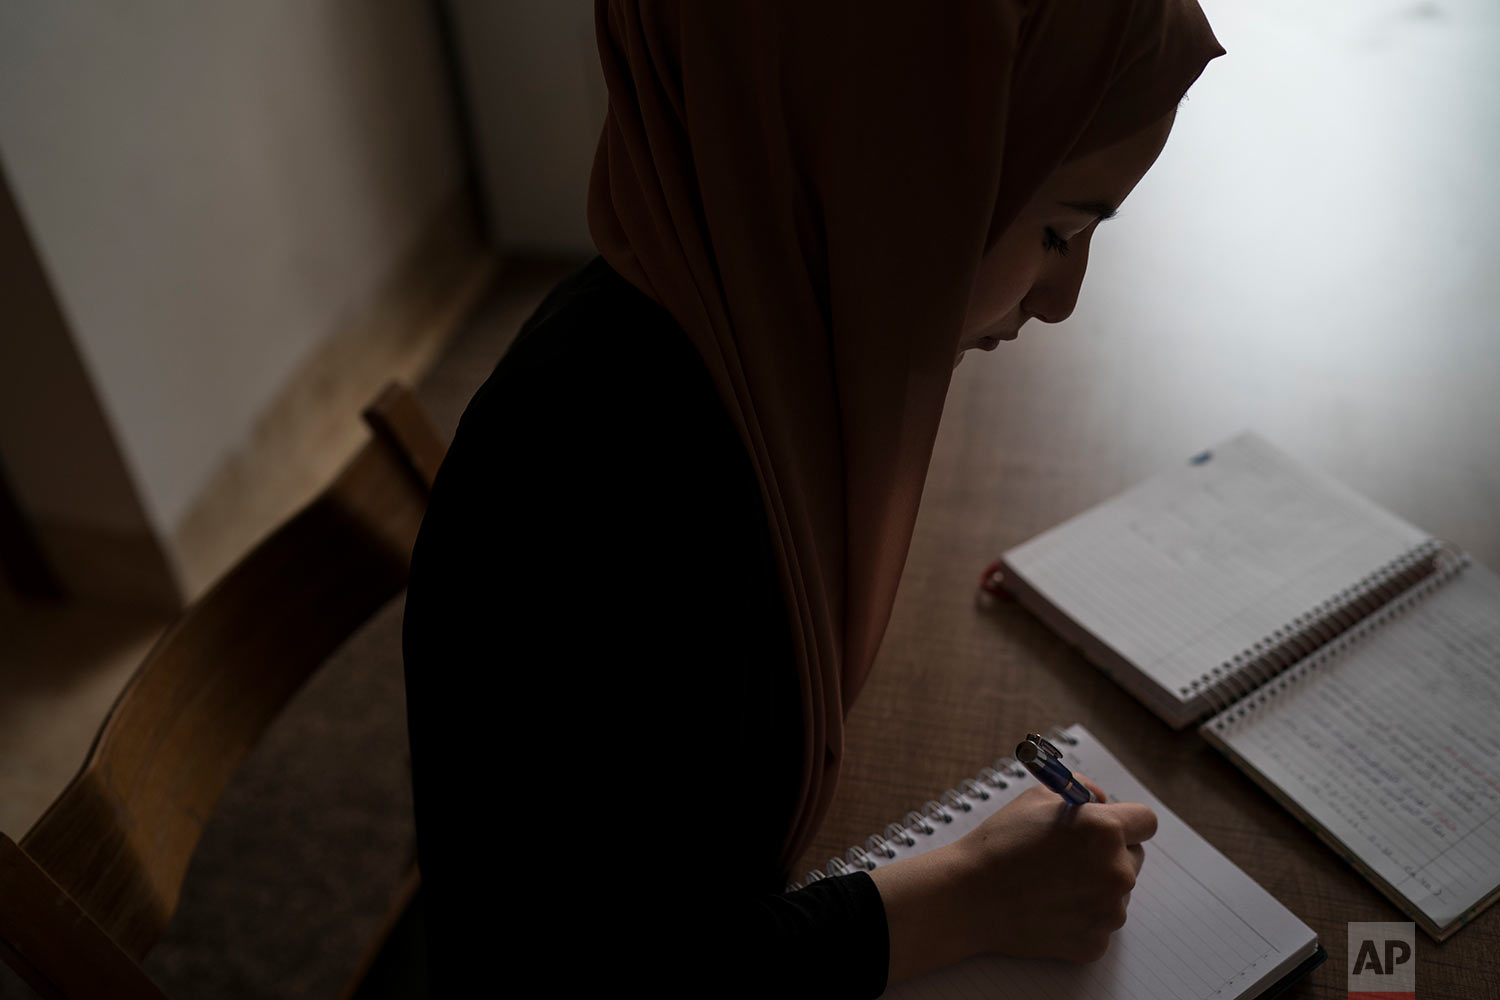 Ferah says writing helped her endure during the rule of the Islamic State group over her home city of Mosul, giving her an outlet to explore her fears and hopes. (AP Photo/Felipe Dana)